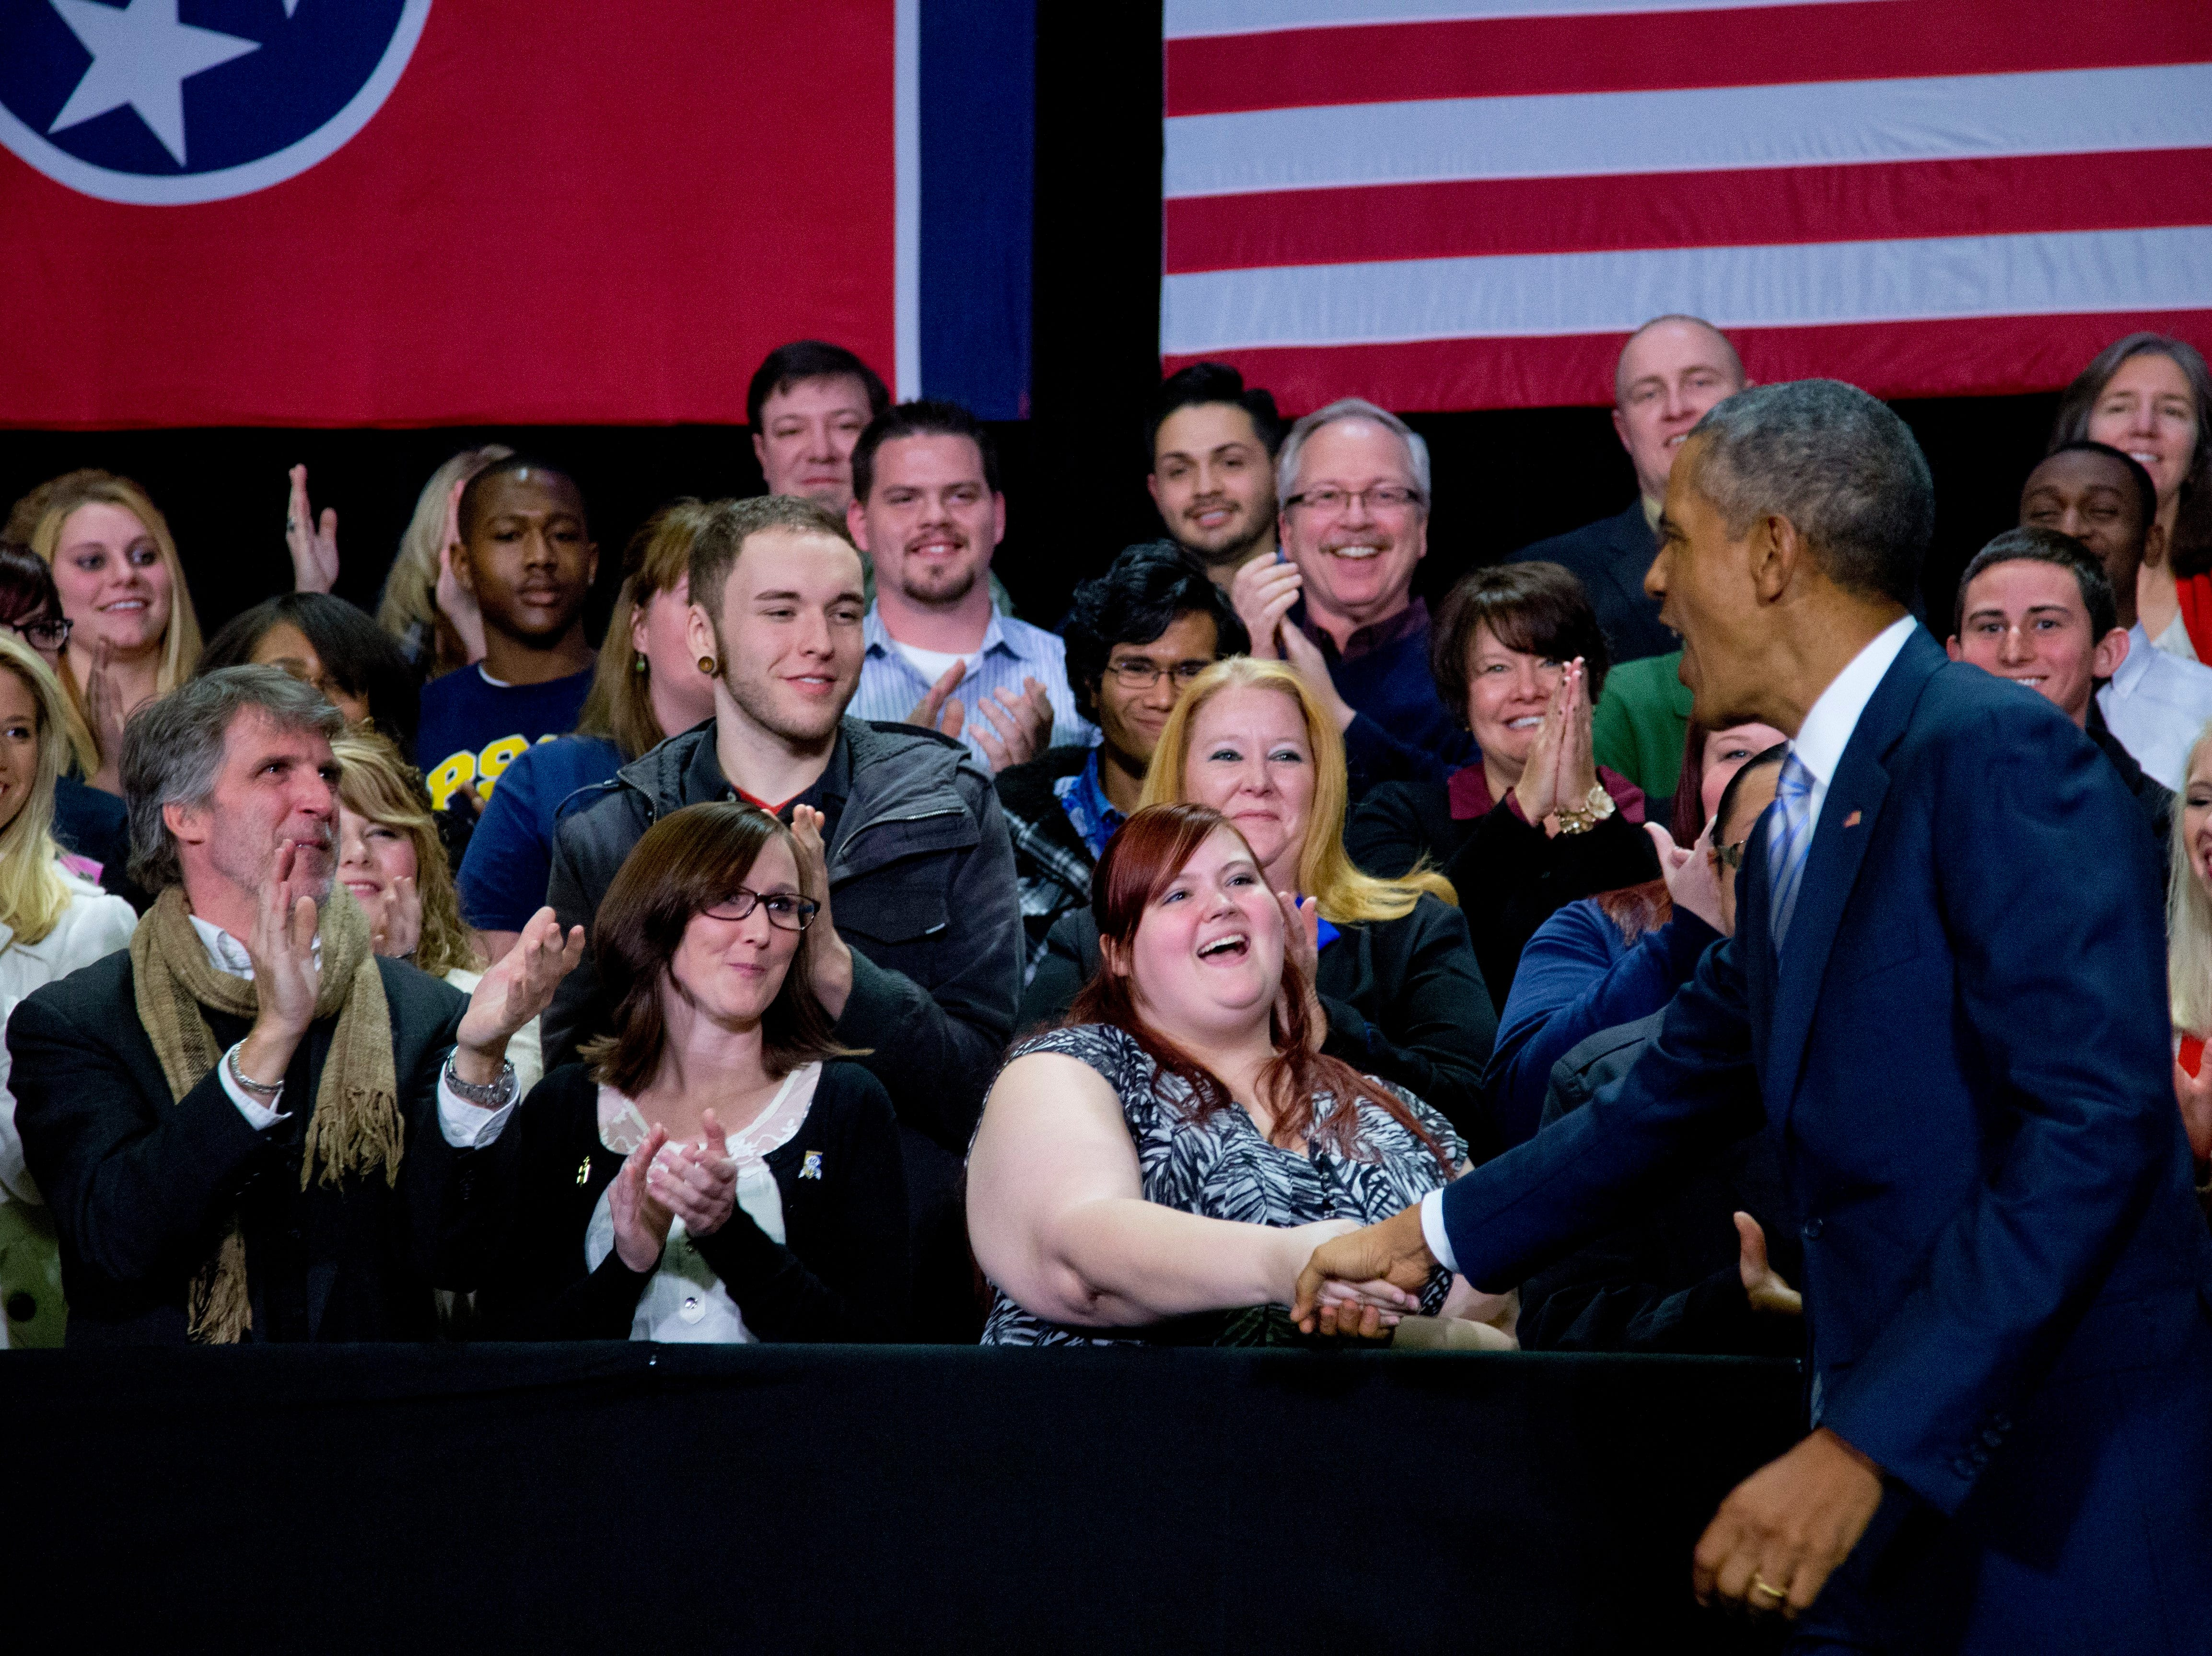 President Barack Obama greets people on stage as he arrive to speaks at Pellissippi State Community College, Friday, Jan. 9, 2015, in Knoxville, Tenn., about new initiatives to help more Americans go to college and get the skills they need to succeed. (AP Photo/Carolyn Kaster)